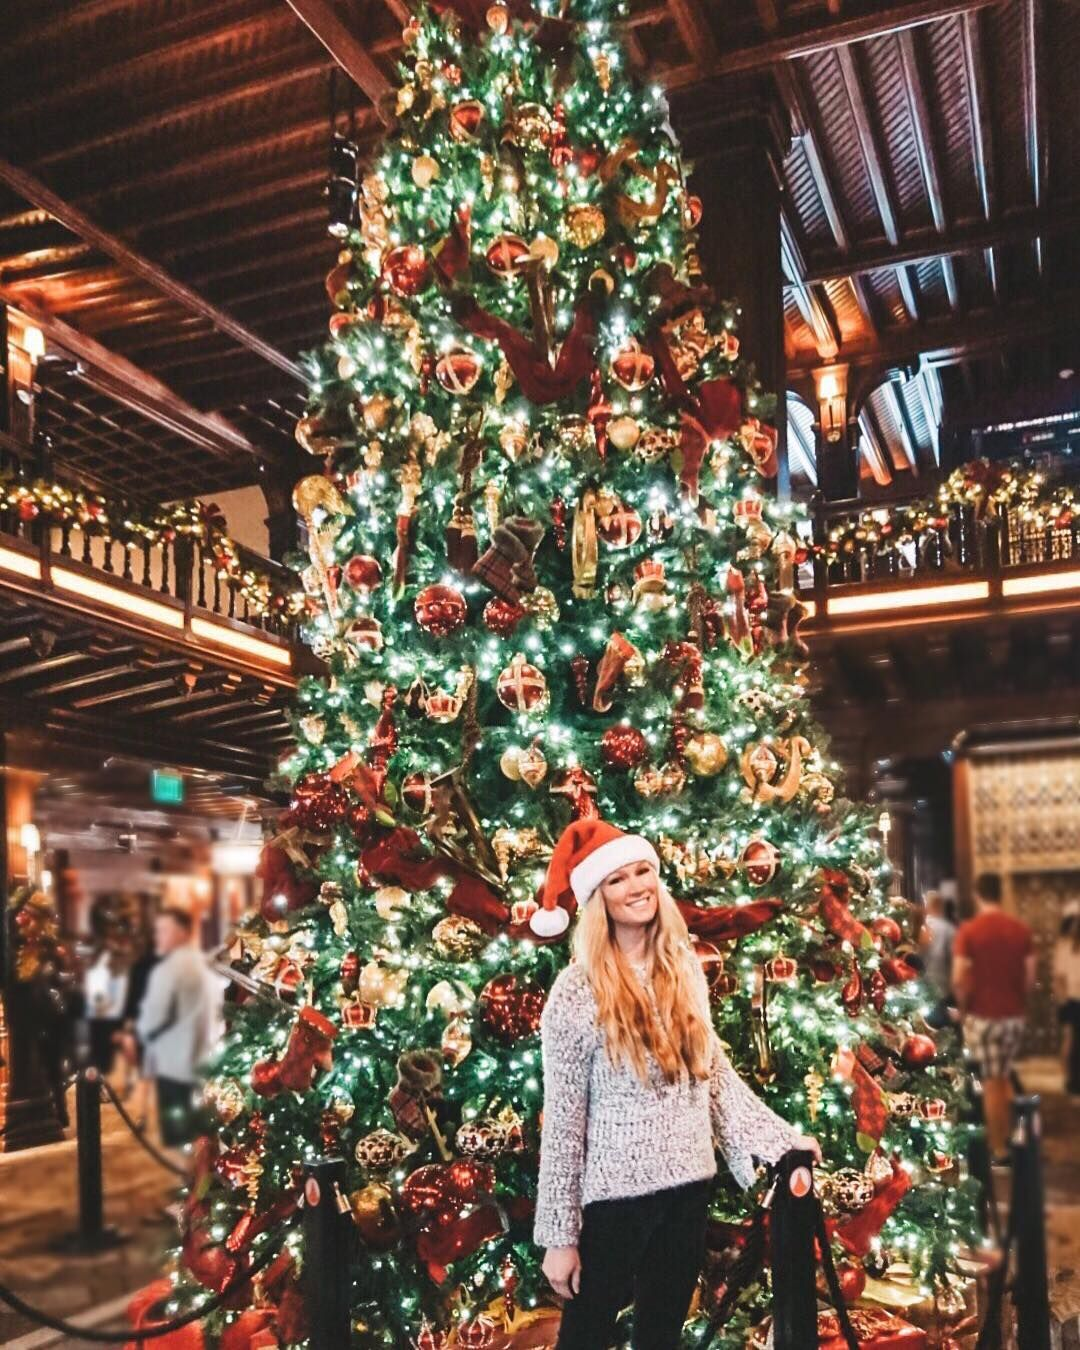 Merry Christmas From The Hotel Delcoronado This Iconic Hotel Has Been Around Since The Year 1888 And Is On In 2020 A Christmas Story Outdoor Ice Skating Ocean View